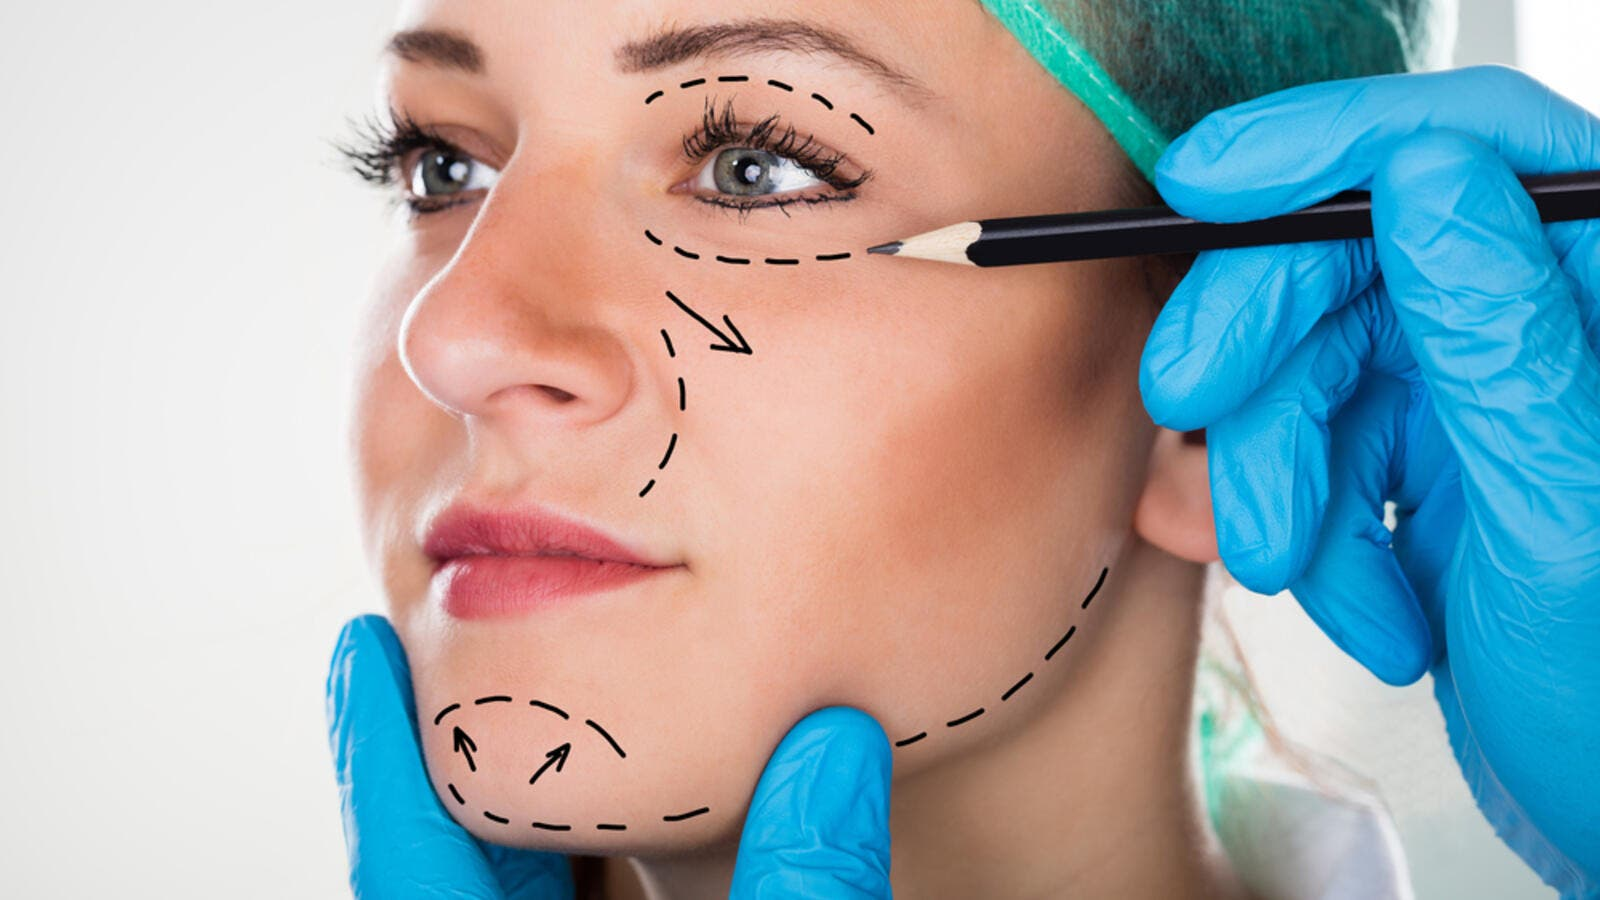 Still, getting cosmetic procedures done is not as scary as it looks